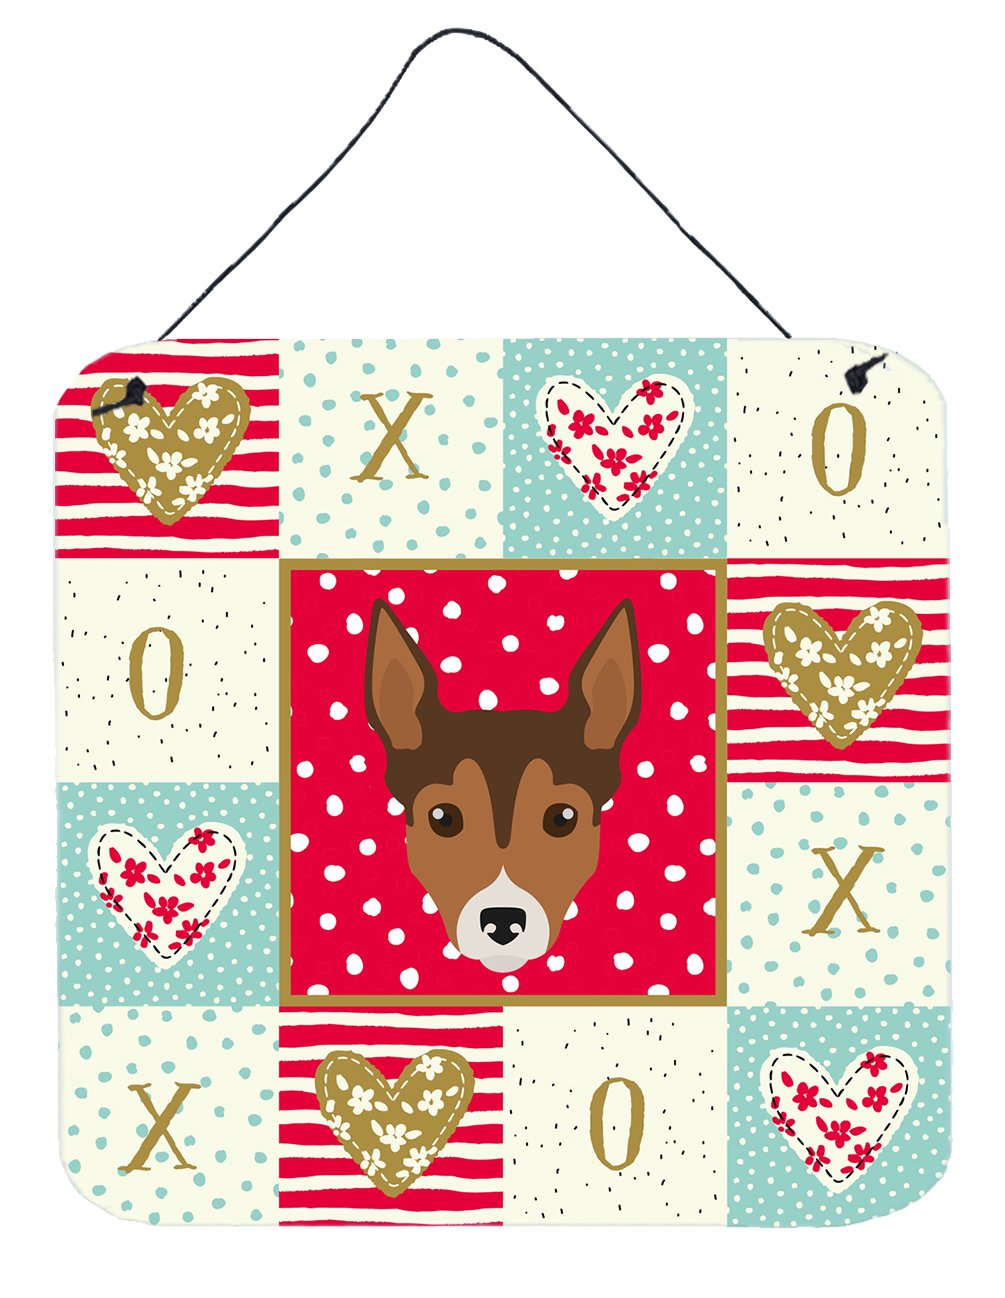 Tenterfield Terrier Love Wall or Door Hanging Prints CK5239DS66 by Caroline's Treasures